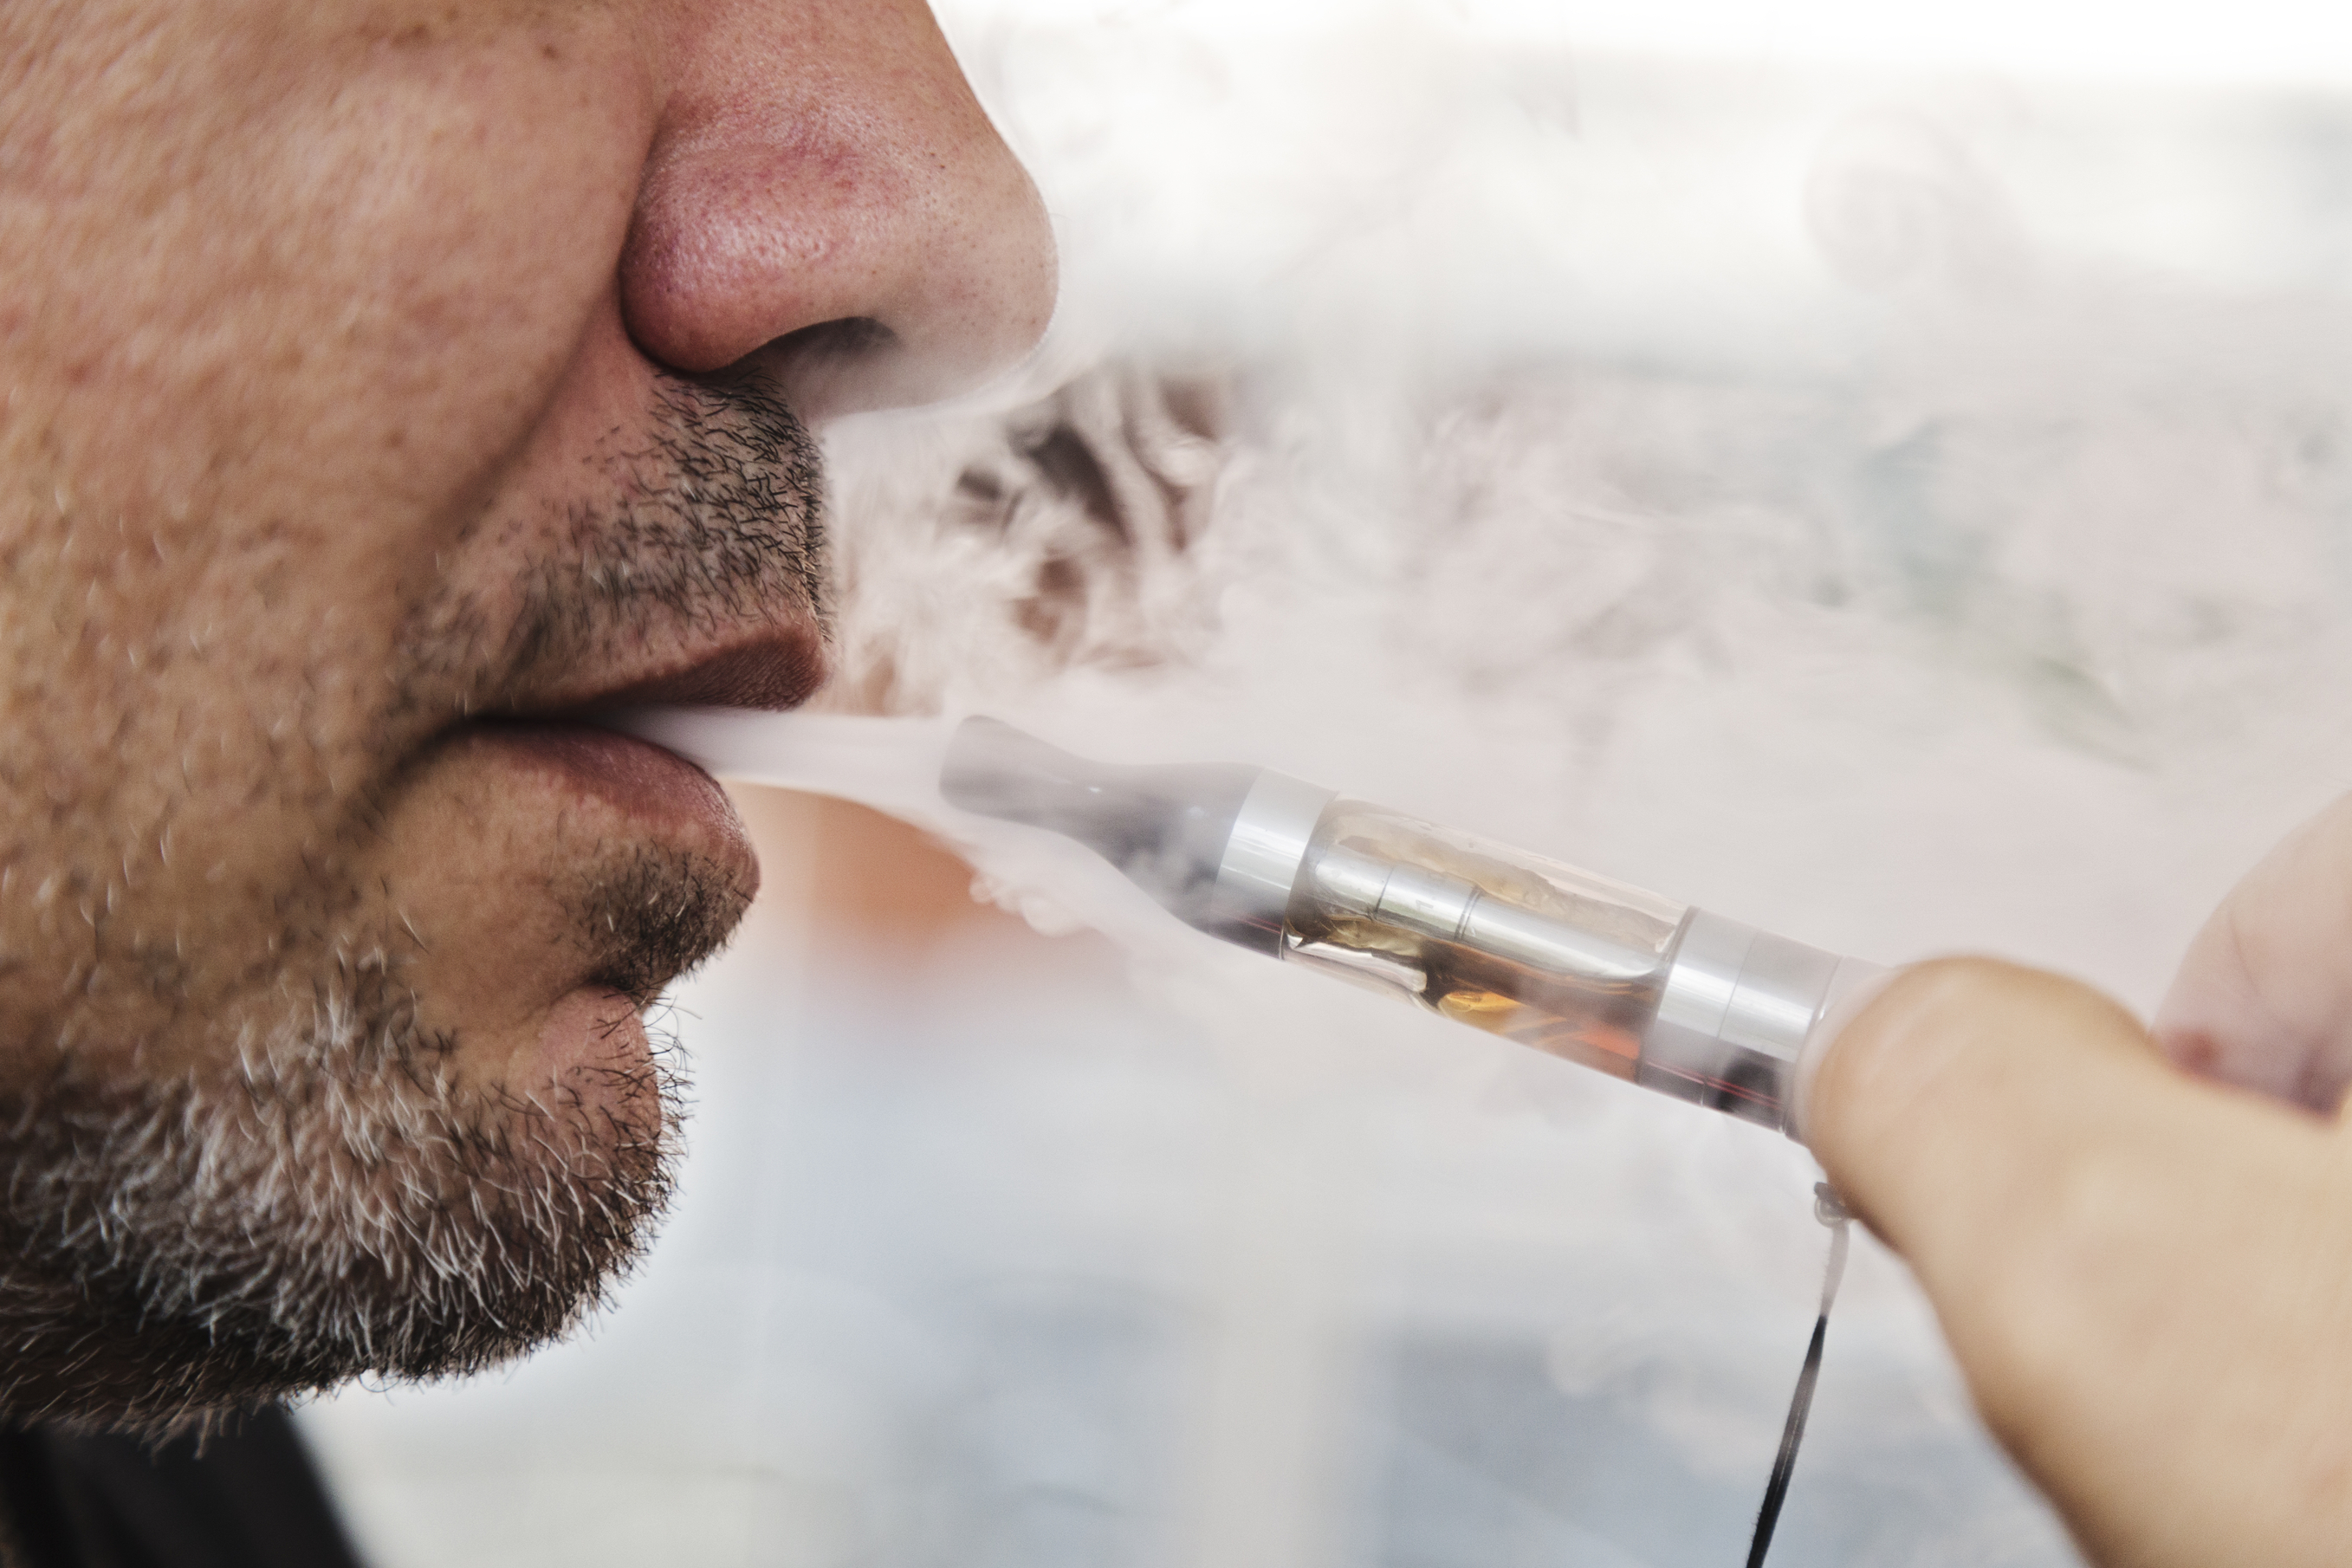 GOVERNMENT GUIDELINES URGE FIRMS TO CREATE 'VAPING ROOMS' AND ALLOW VAPE BREAKS